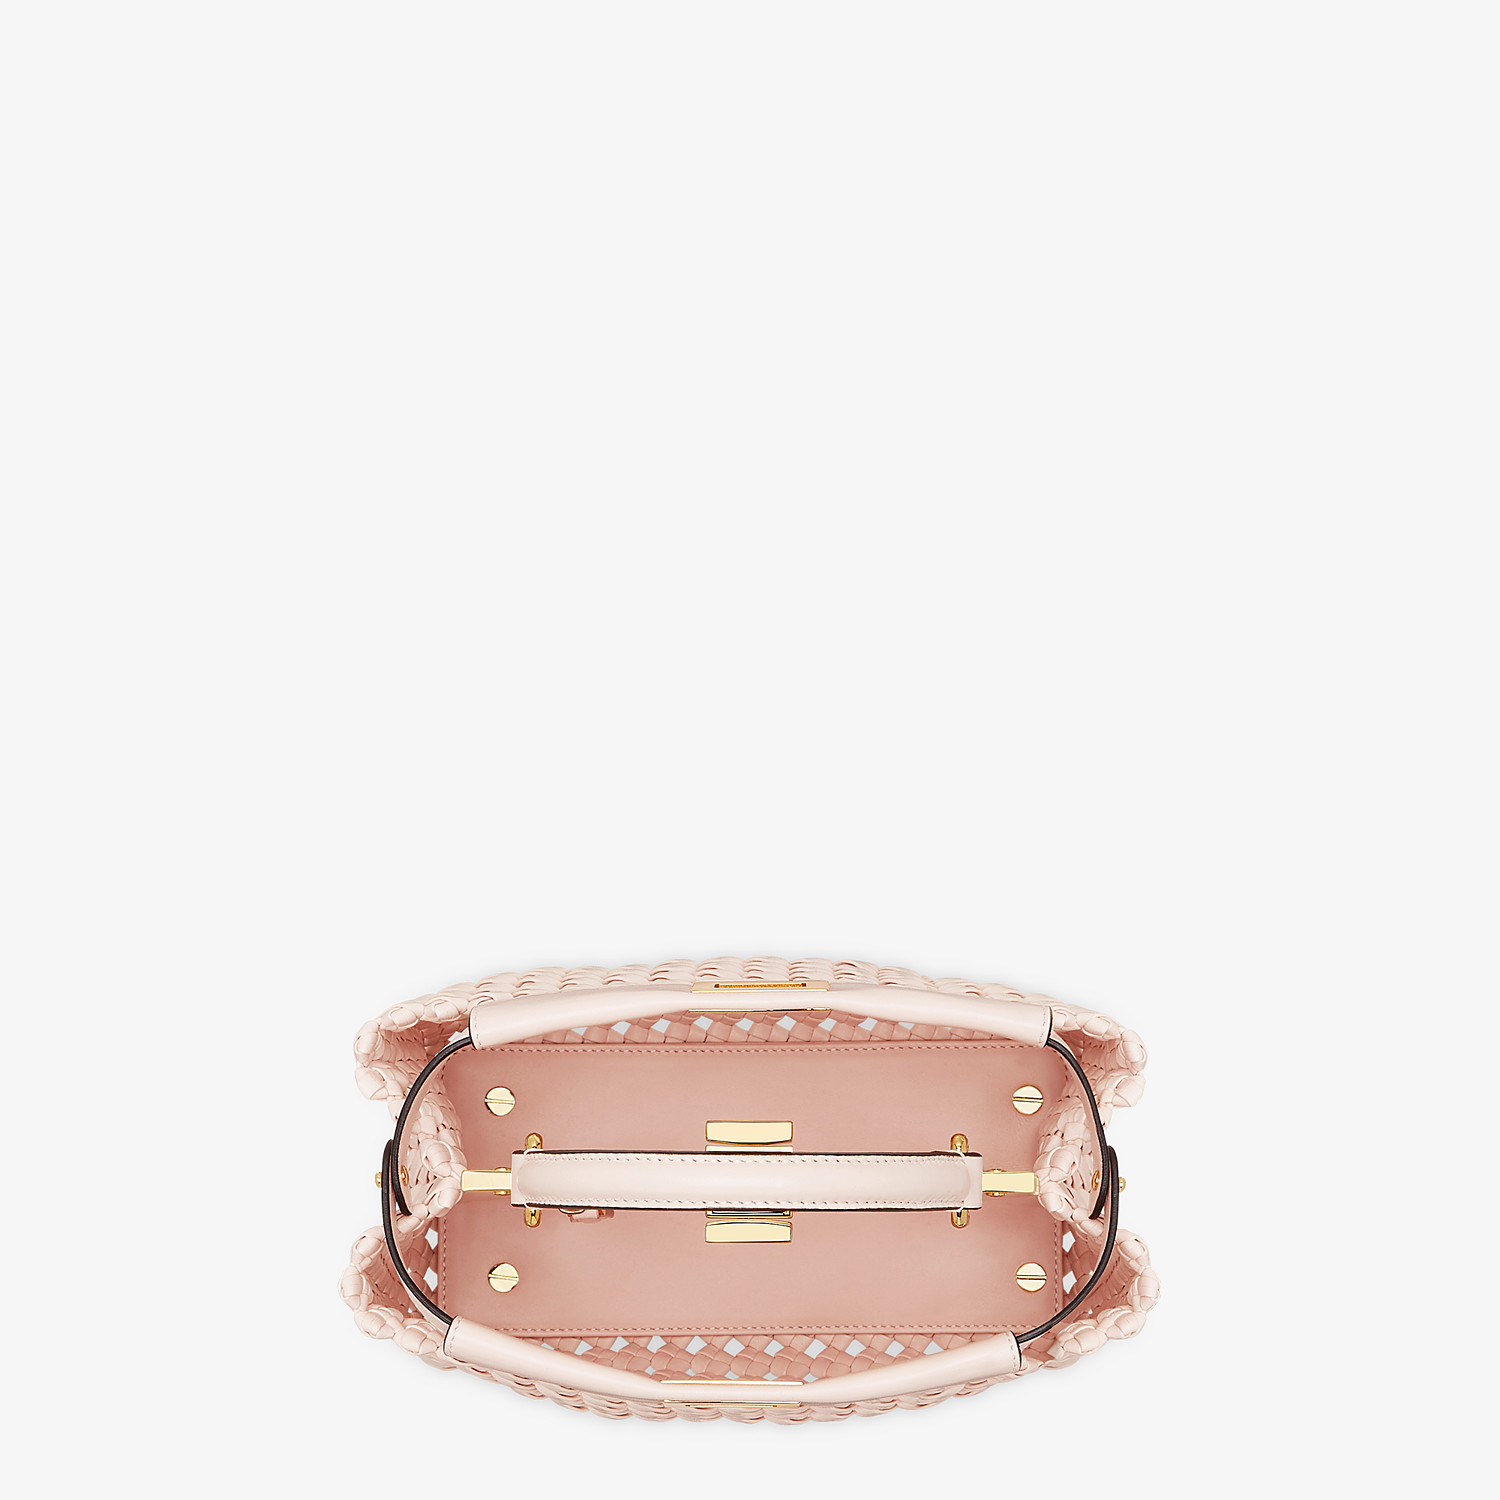 FENDI PEEKABOO ICONIC MINI - Pink leather interlace bag - view 4 detail